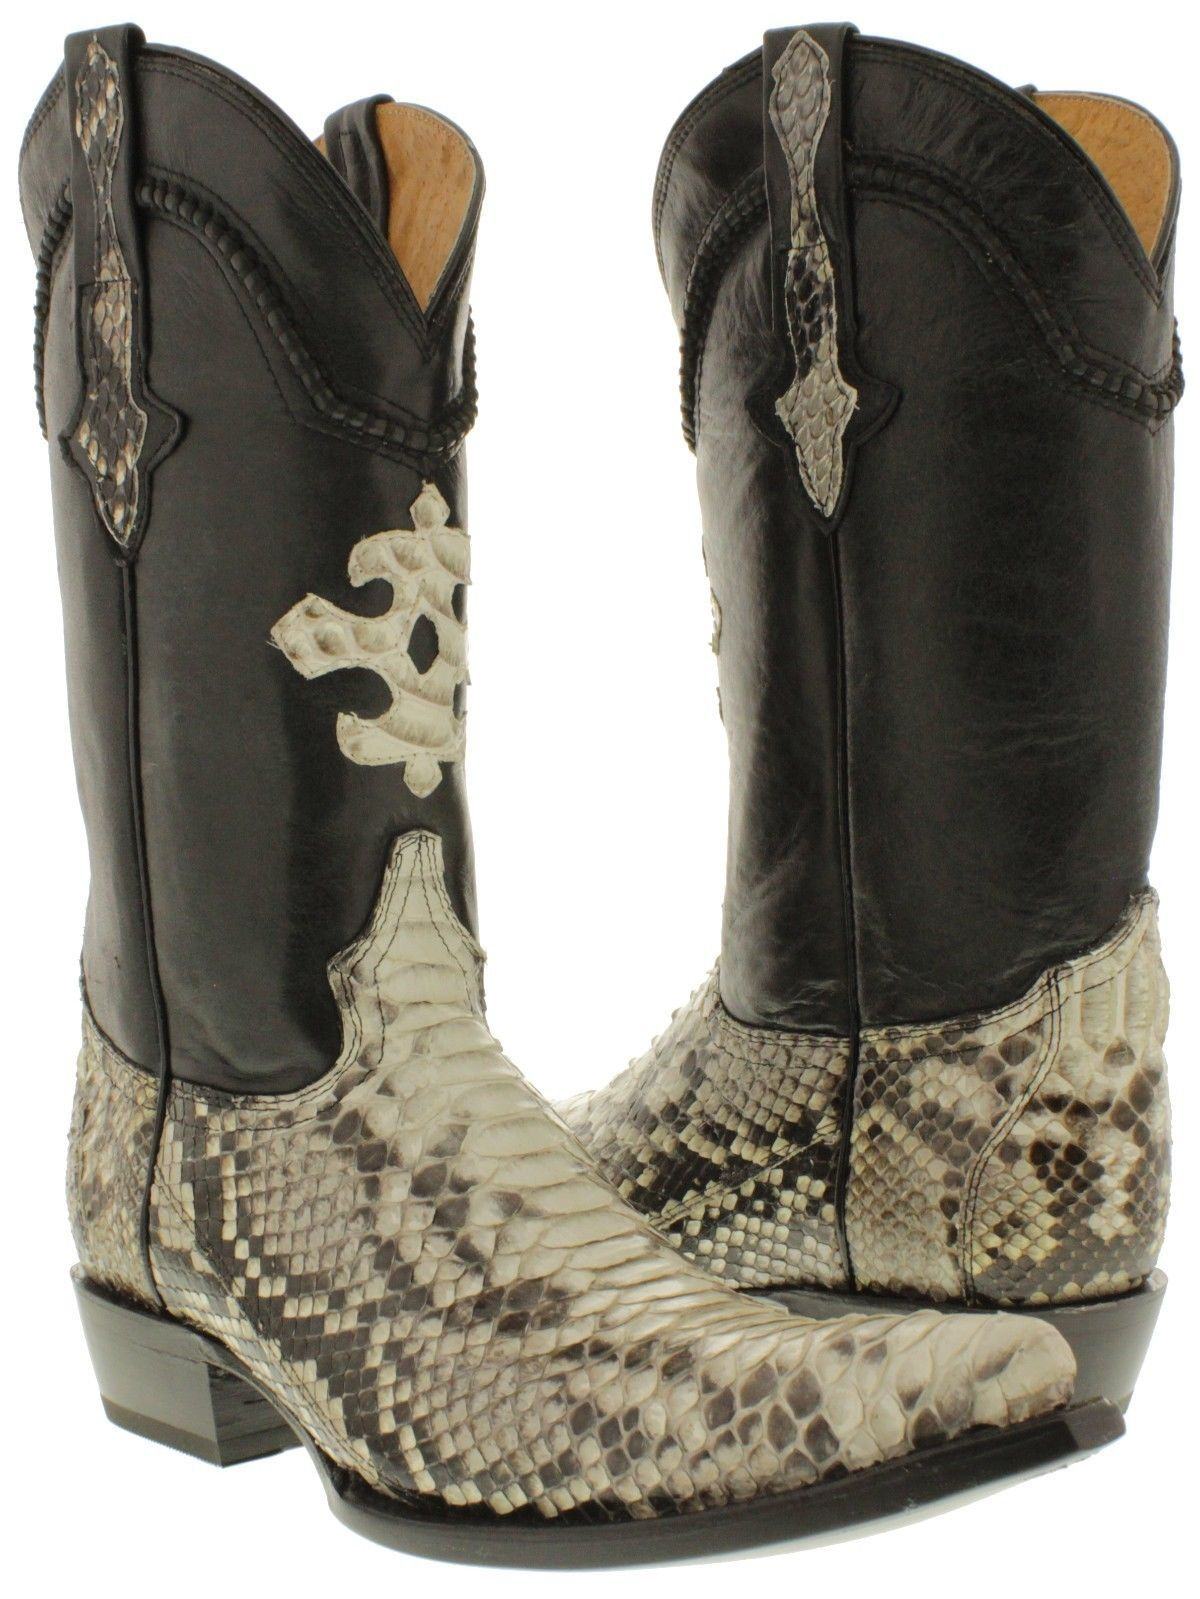 0400247cda9 Details about Men's Exotic Genuine Python Snakeskin Cowboy Boots ...